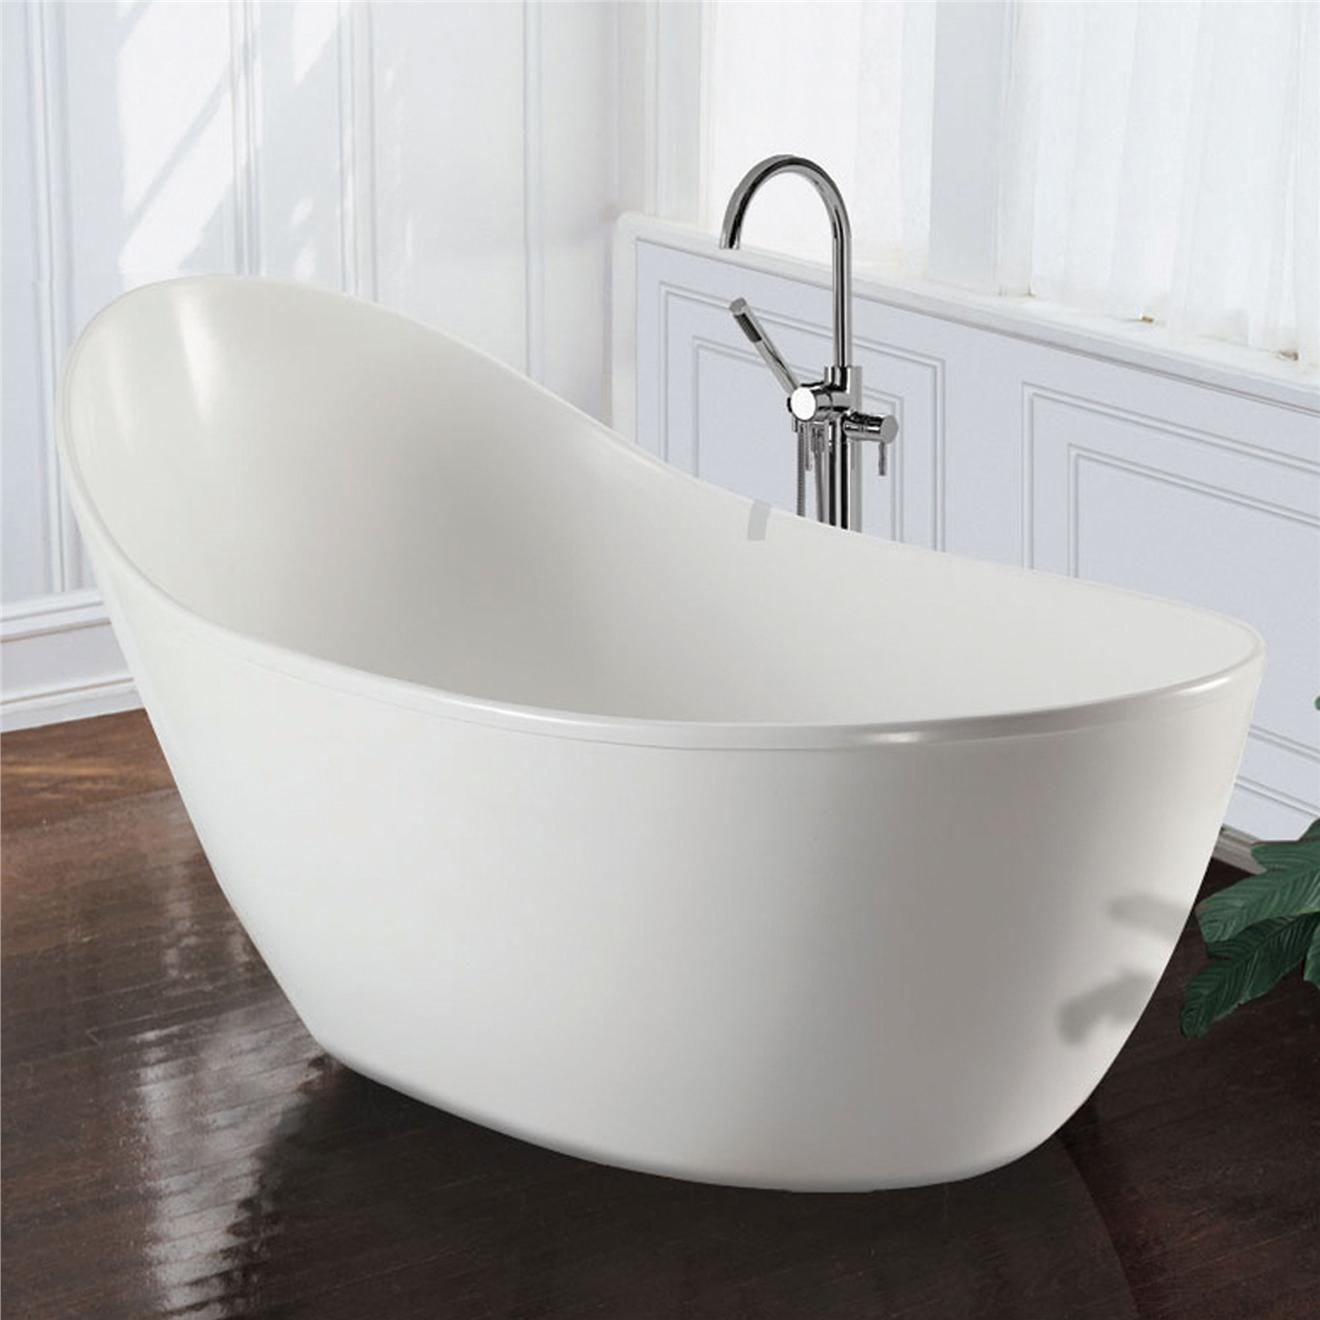 love the slipper style soaker tub but will it look dated